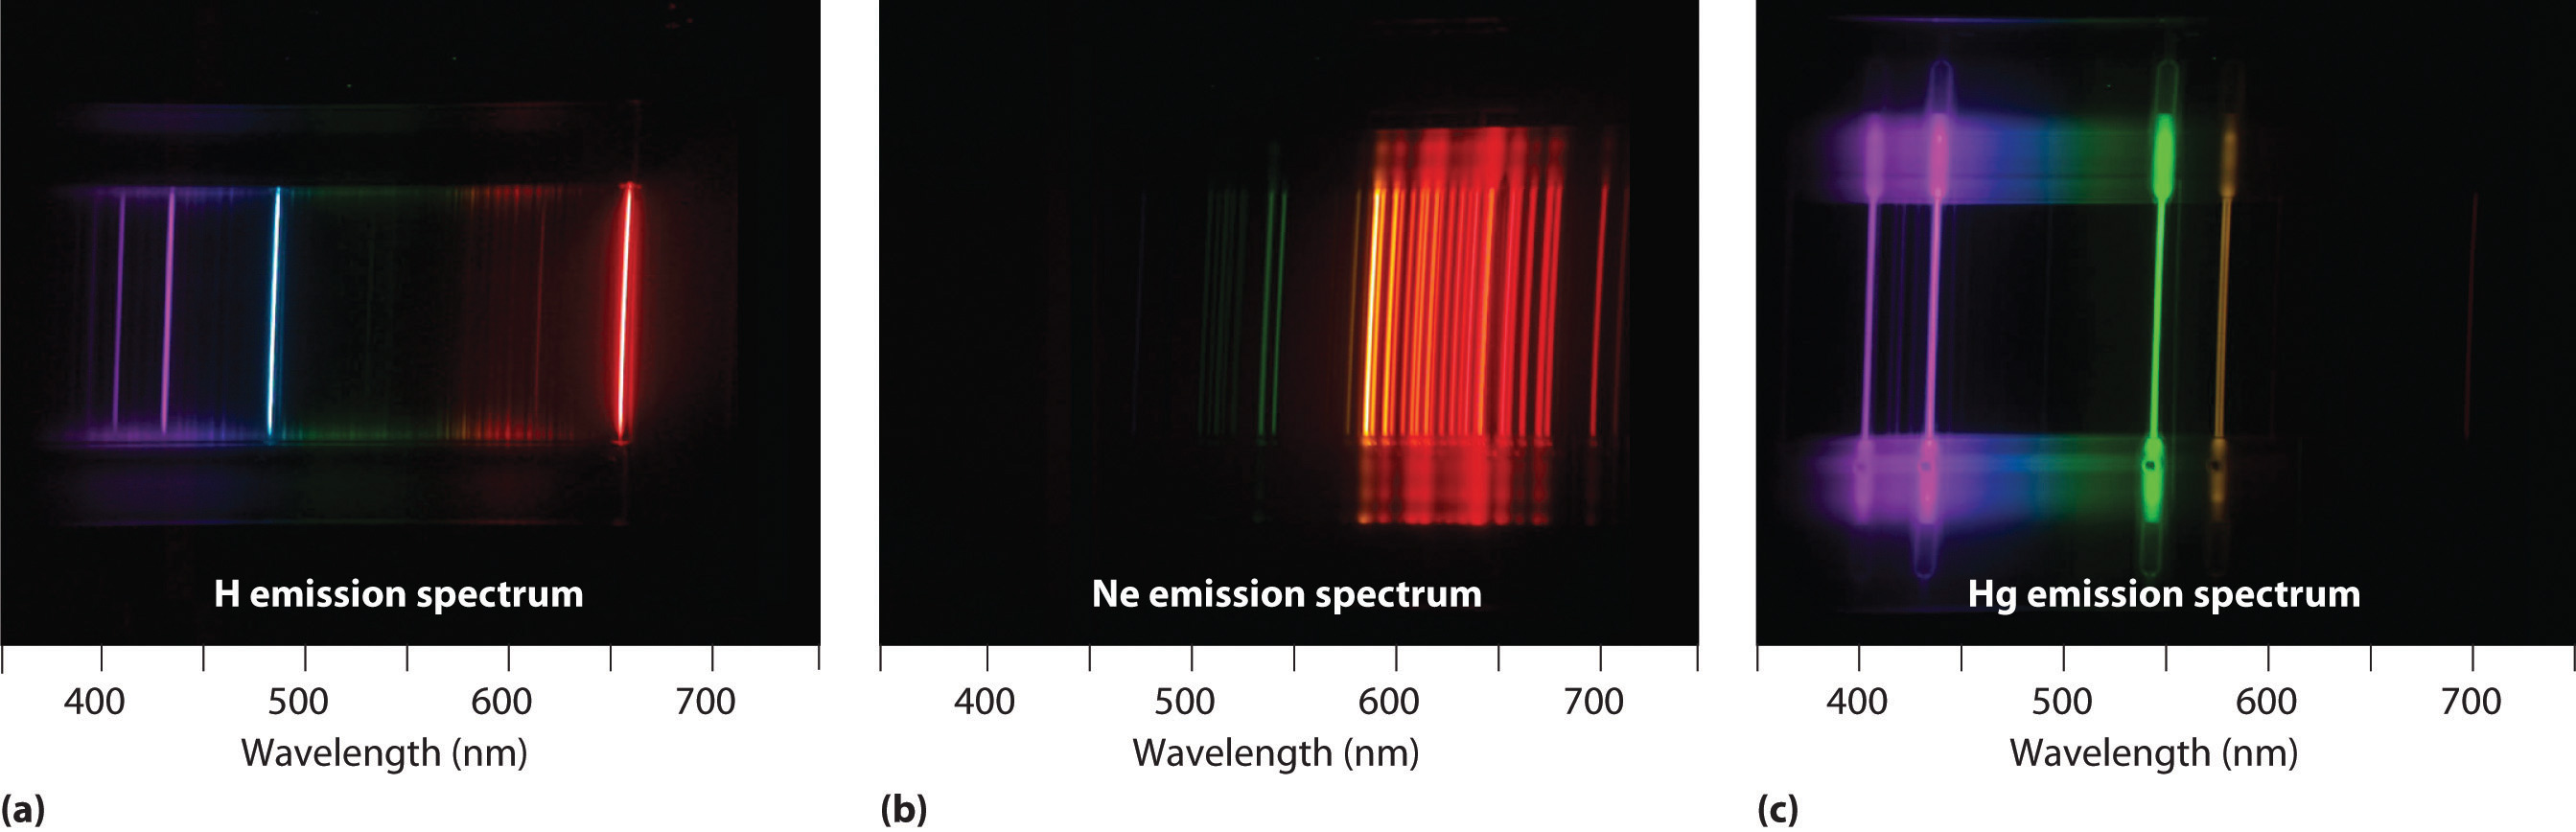 atomic spectra and models of the atom